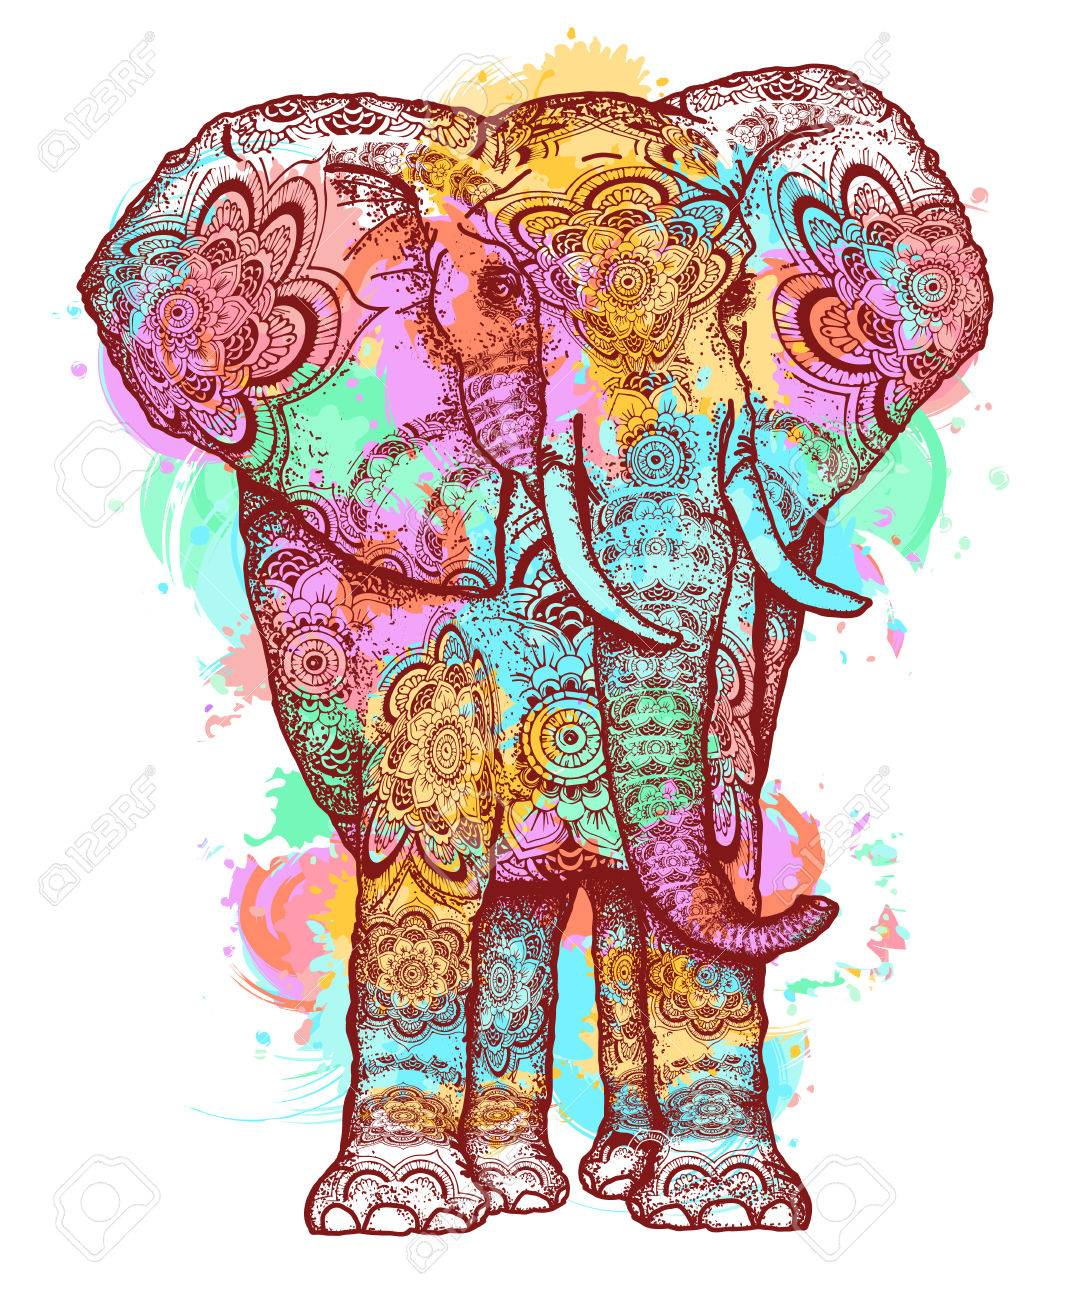 Lement D Art Moderne Design Elephant Couleur T Shirt Pour La